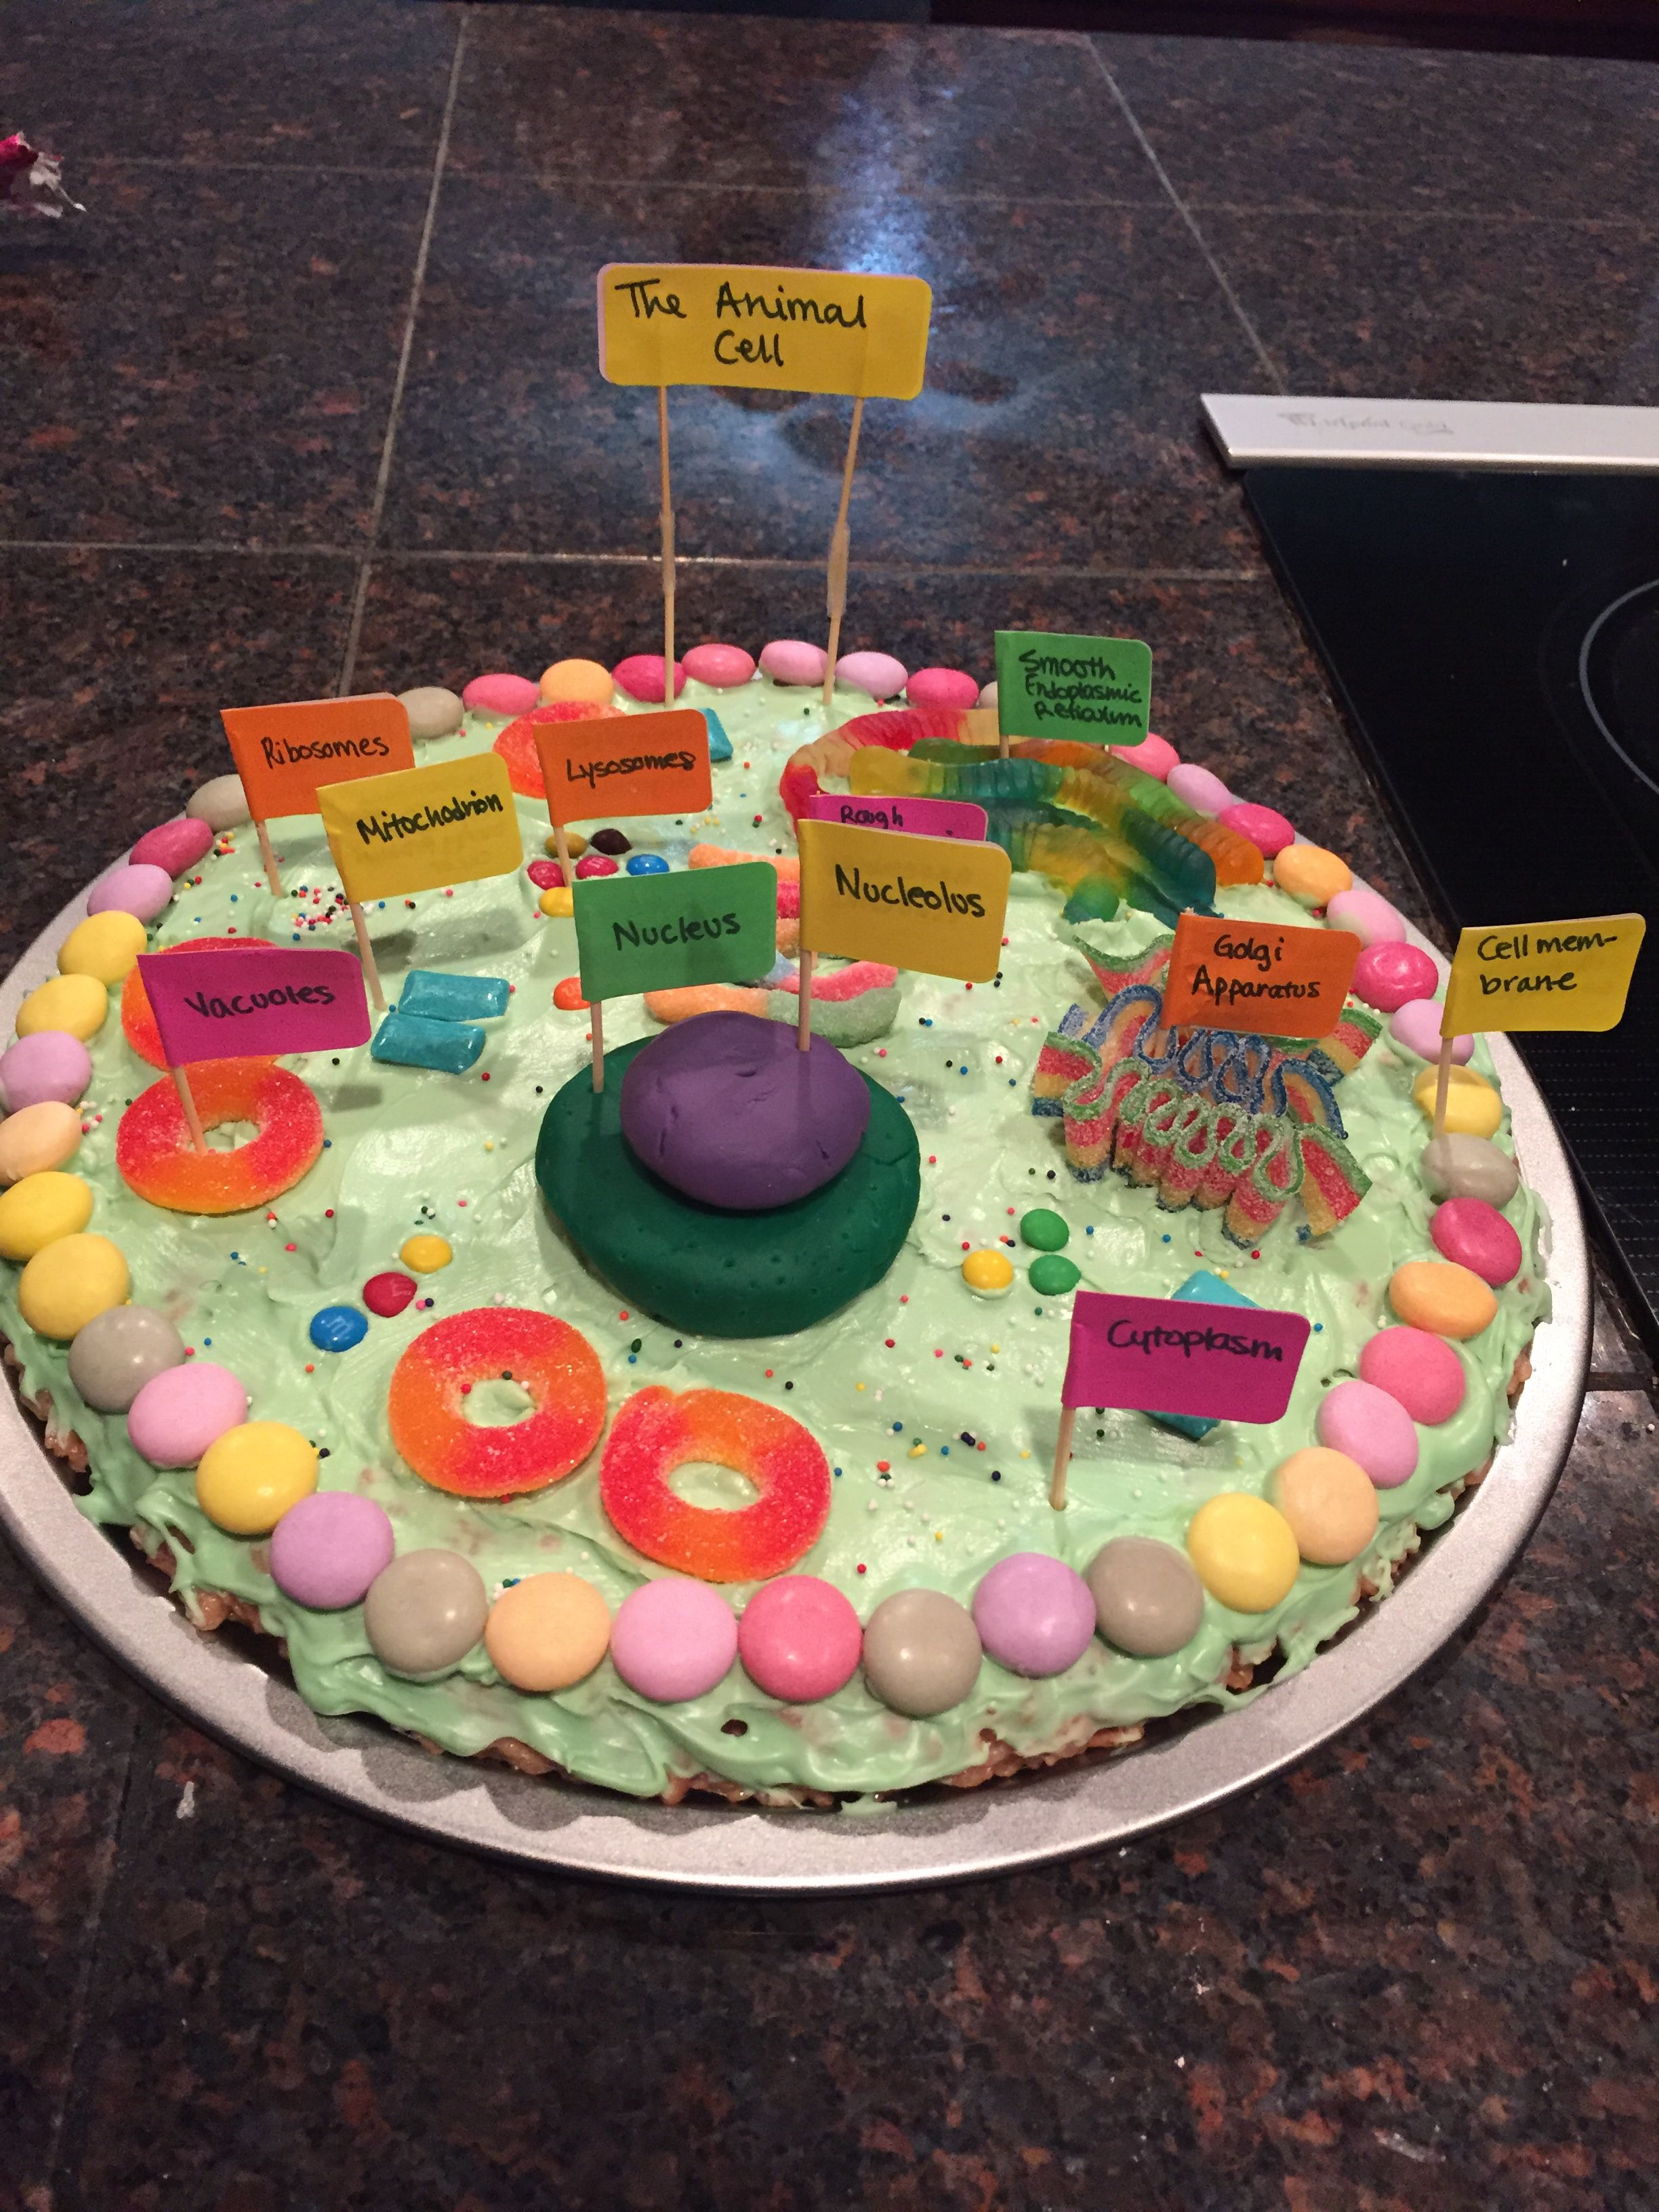 Bestb Animal Cell Made Out Of Cake